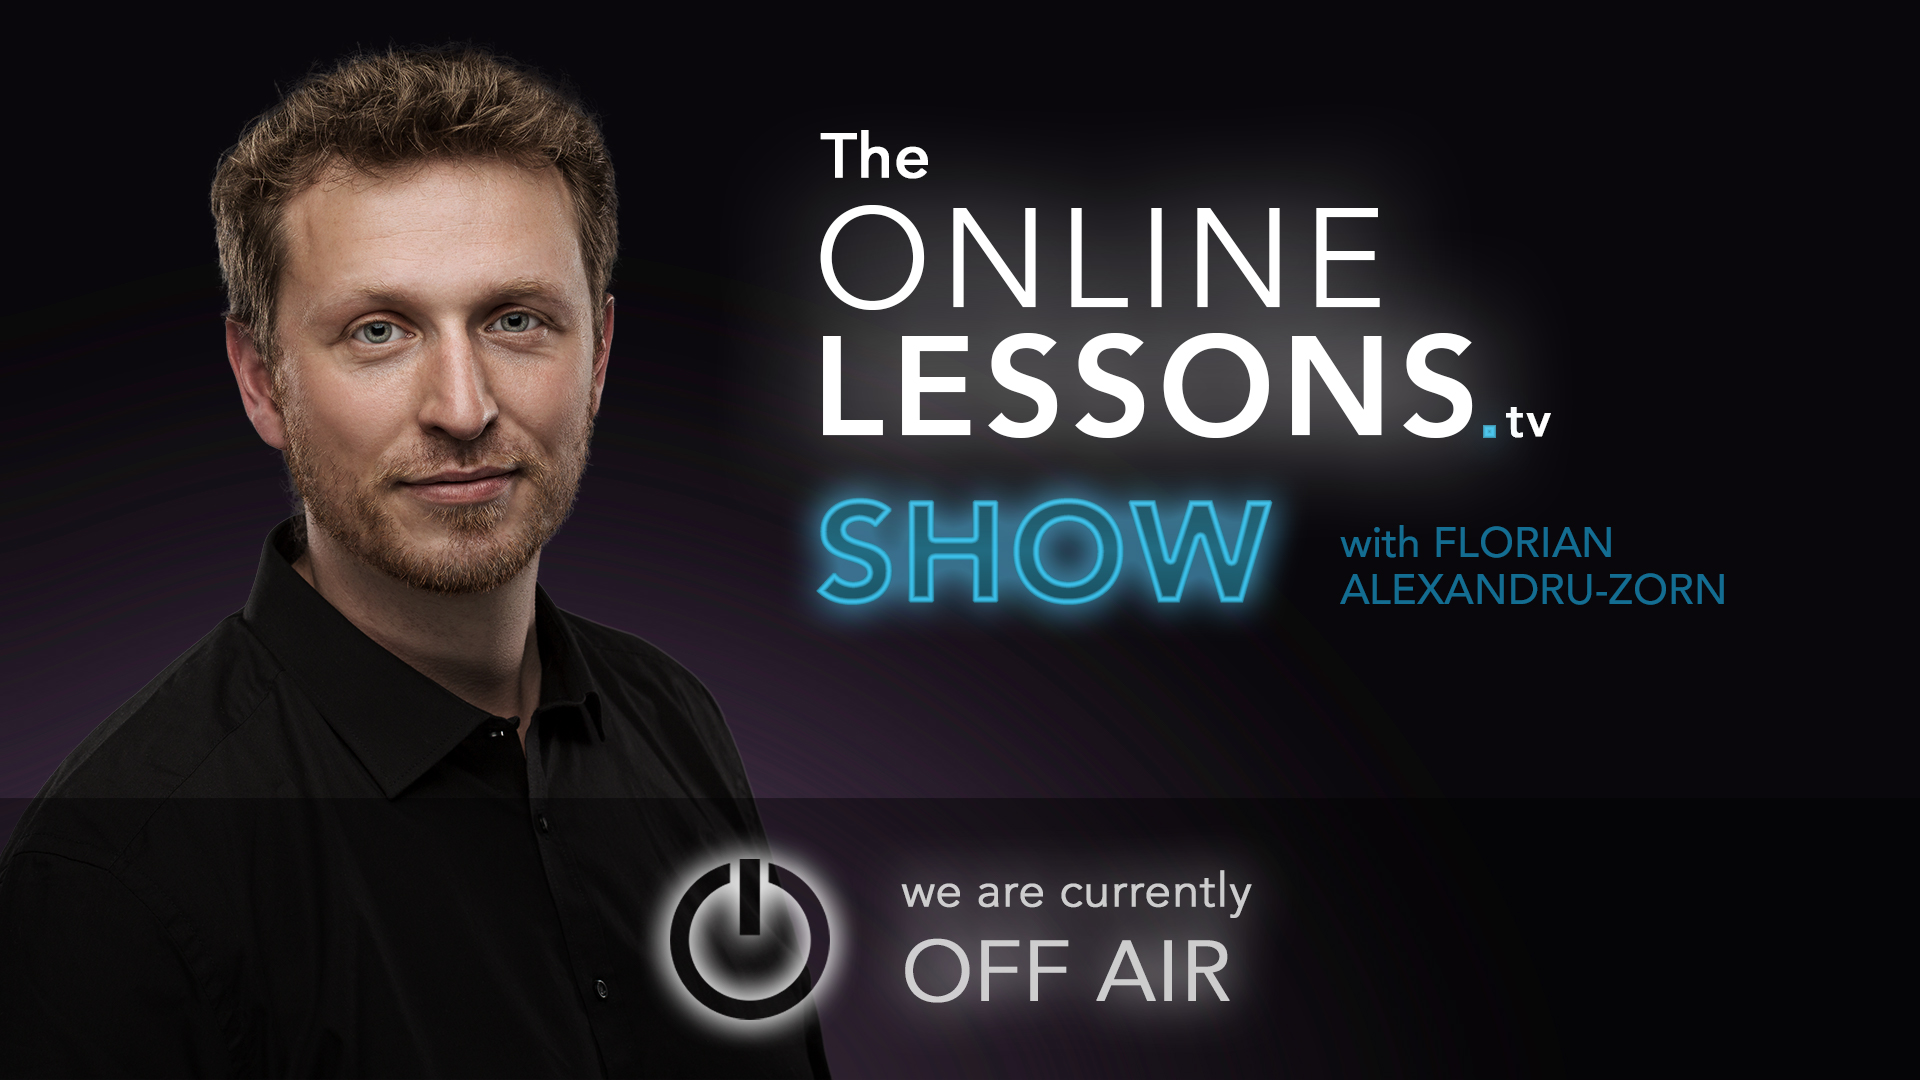 OnlineLessons.tv Show